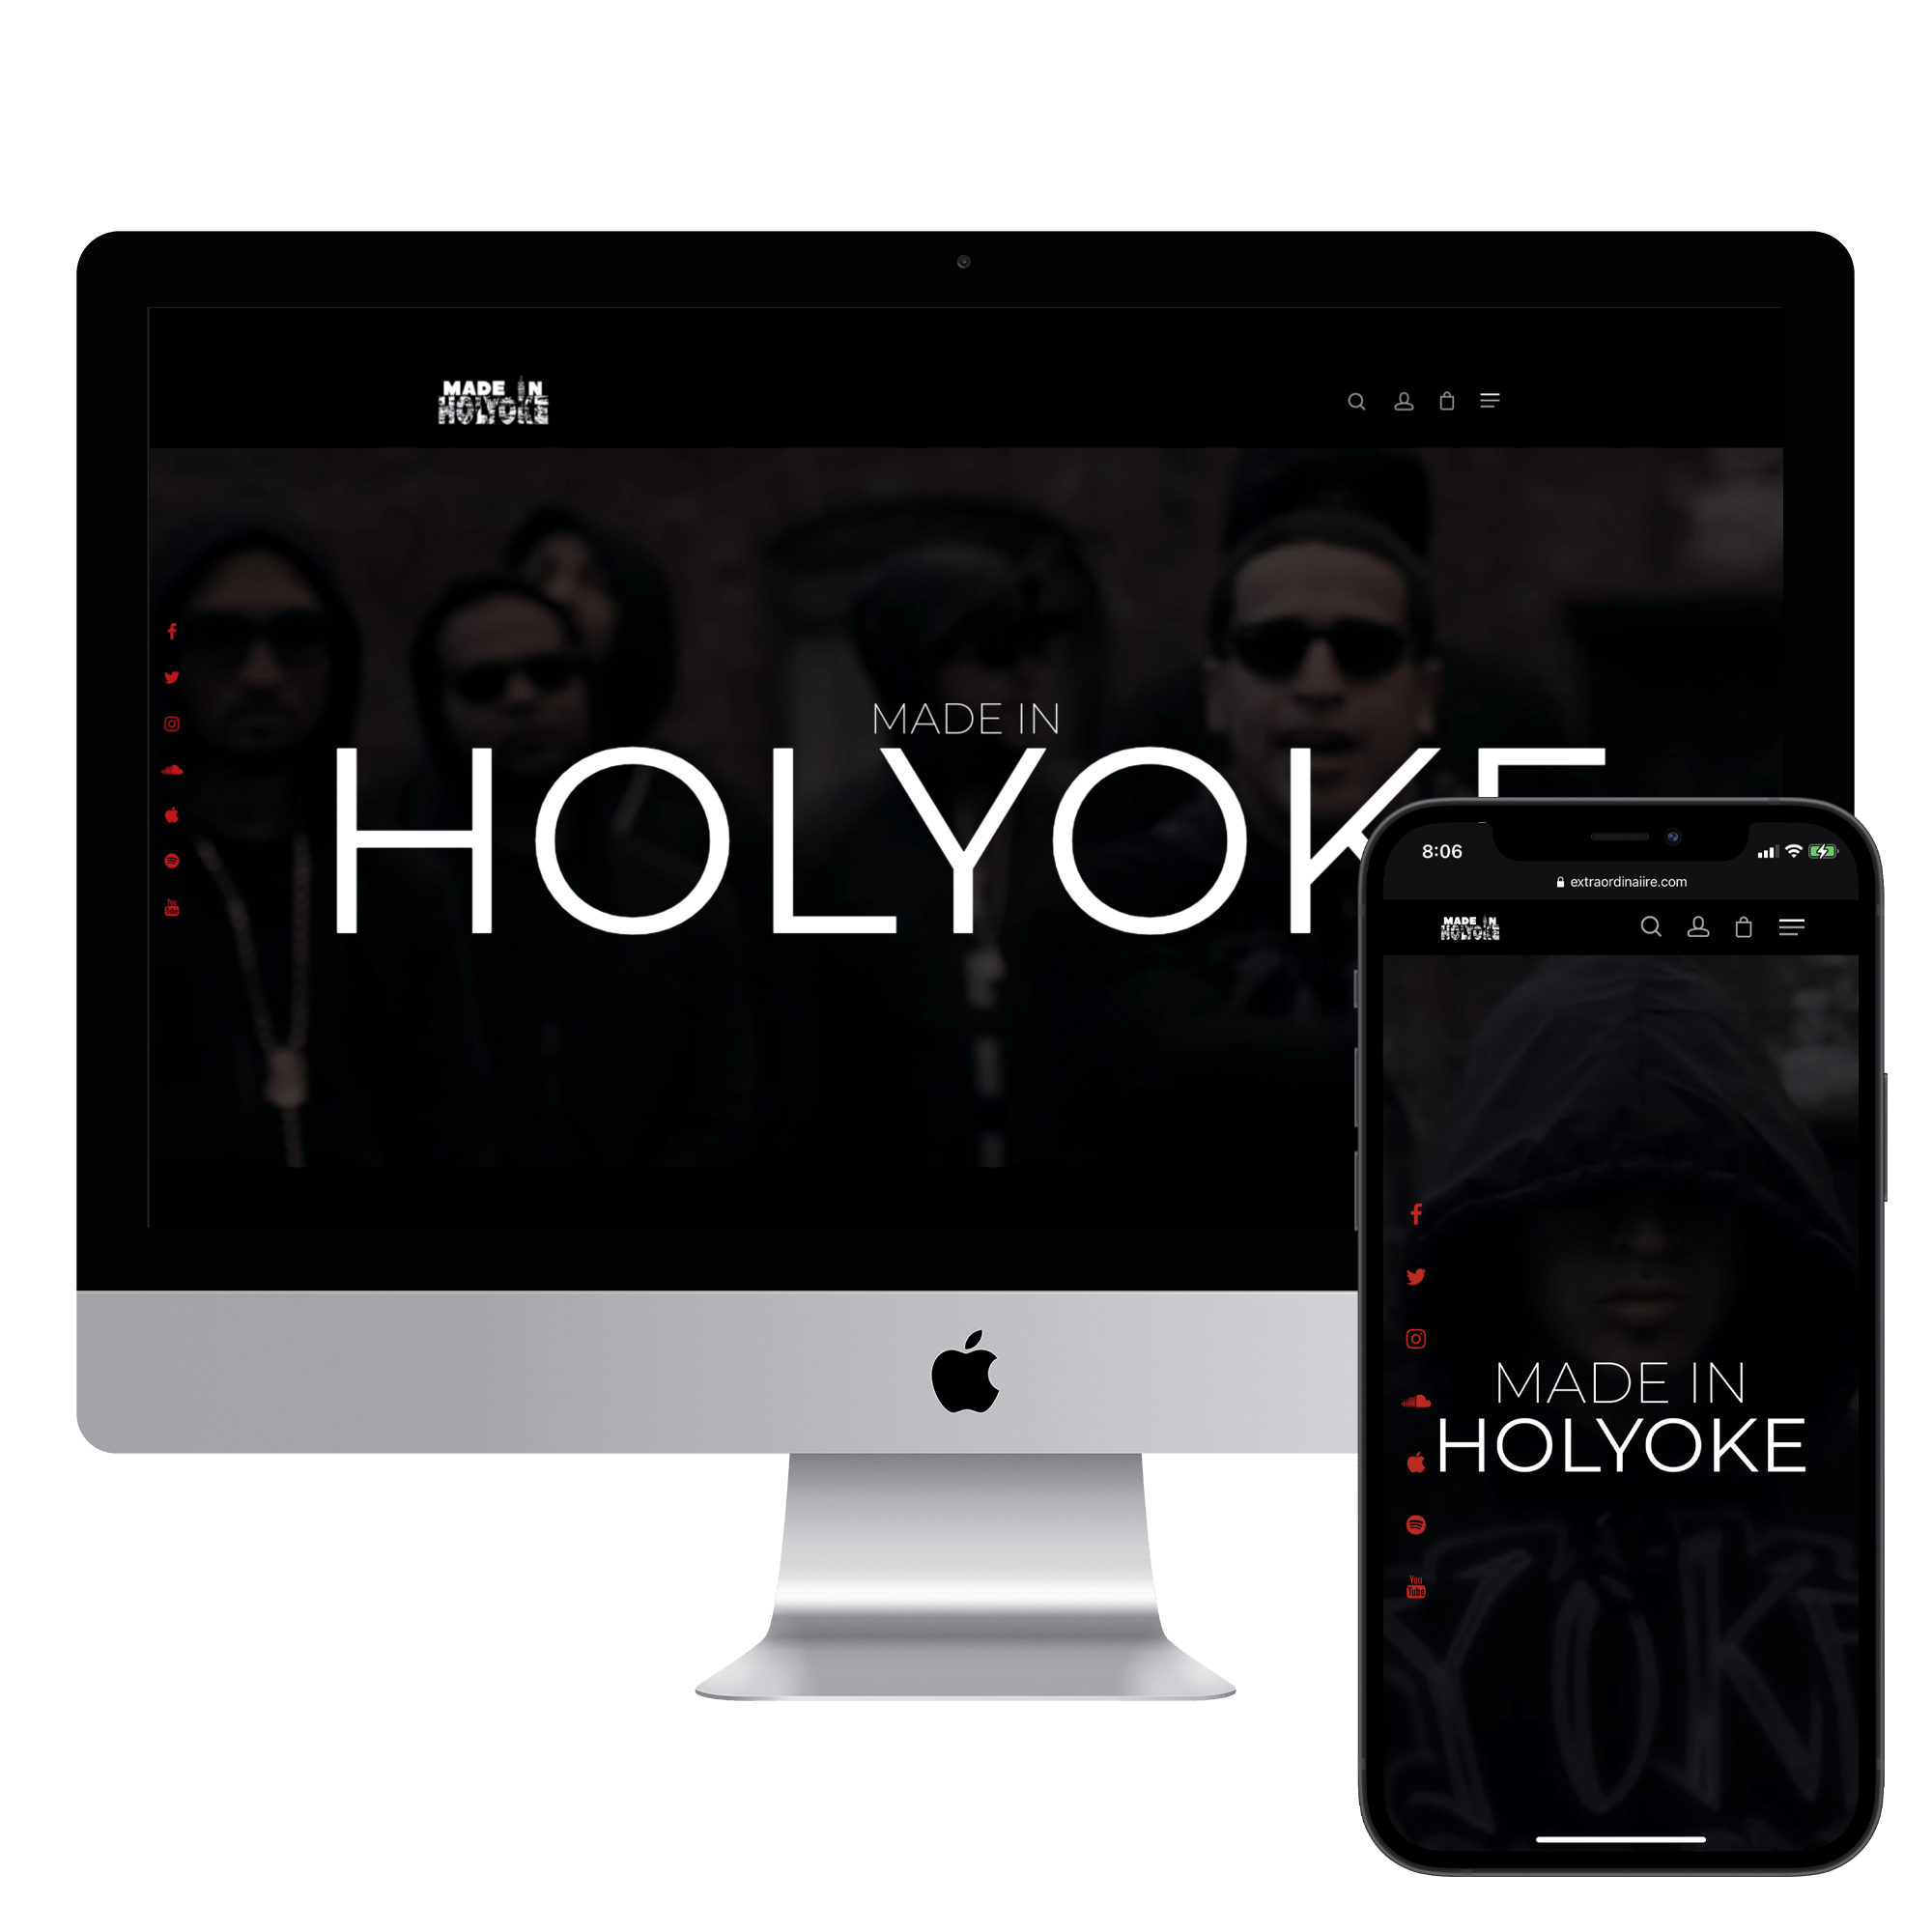 Device mock up for clothing company